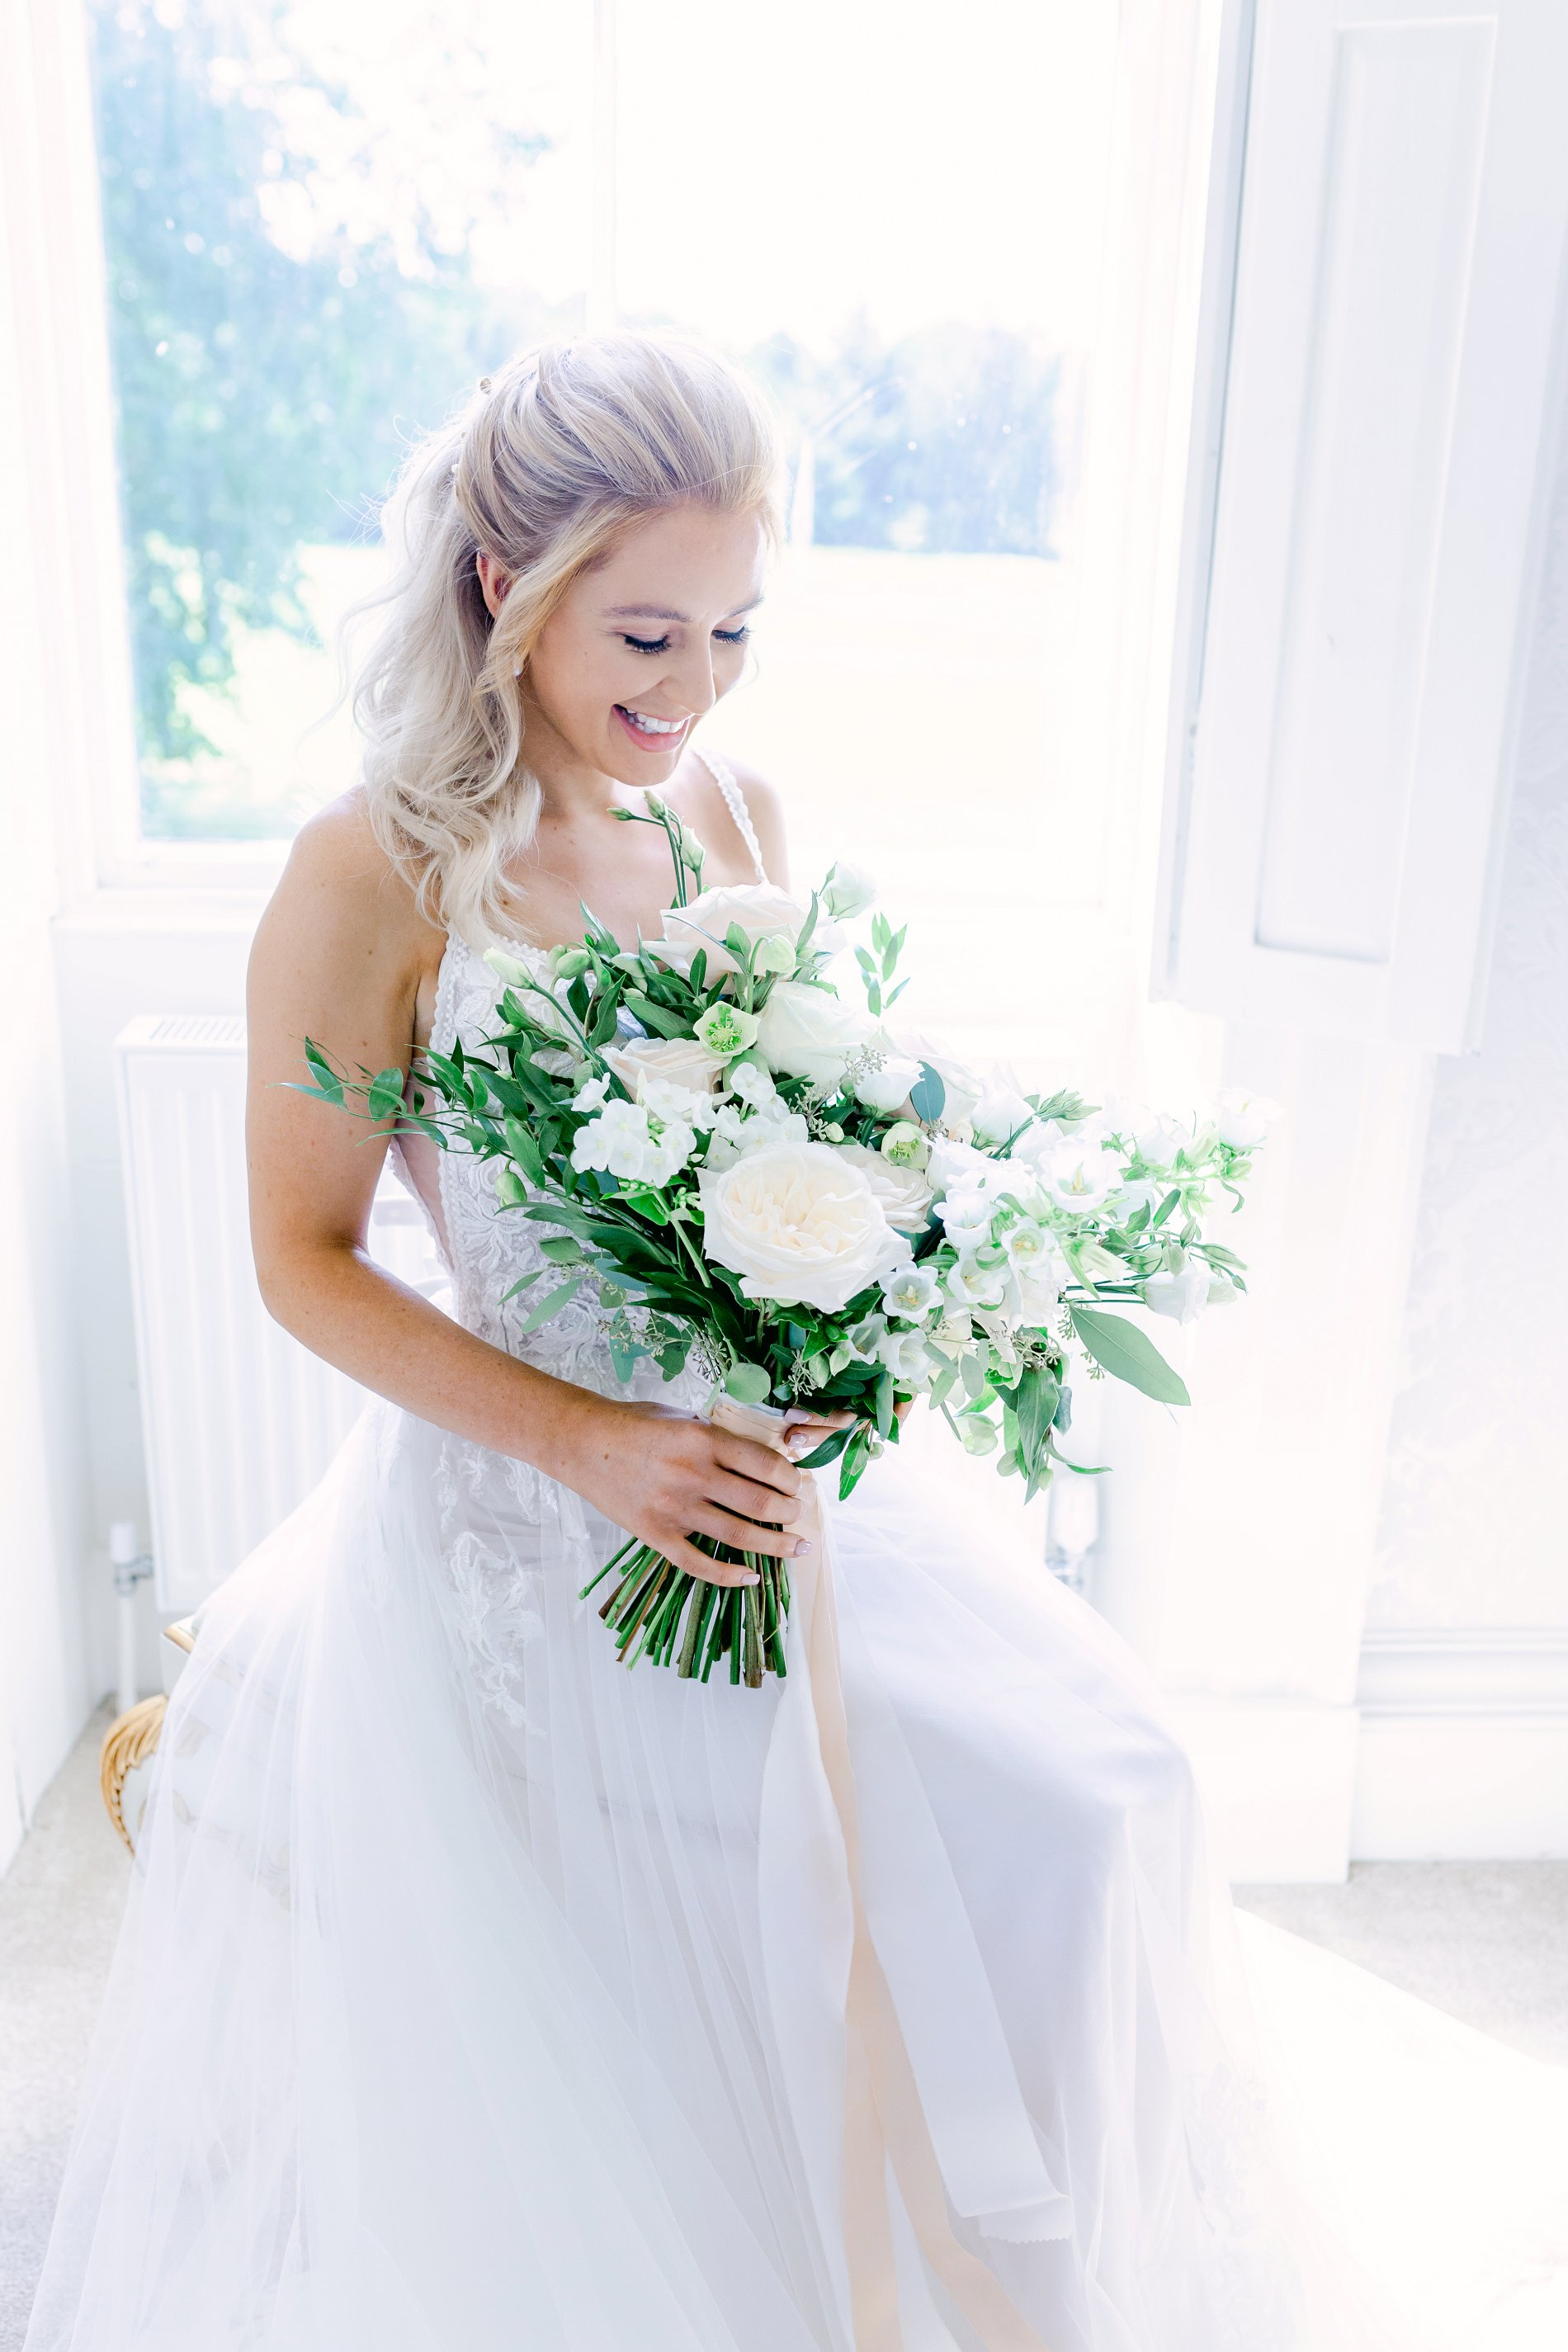 An Elegant UNVEILED Network wedding shoot at Hirst Priory (c) Ailsa Reeve Photography (6)